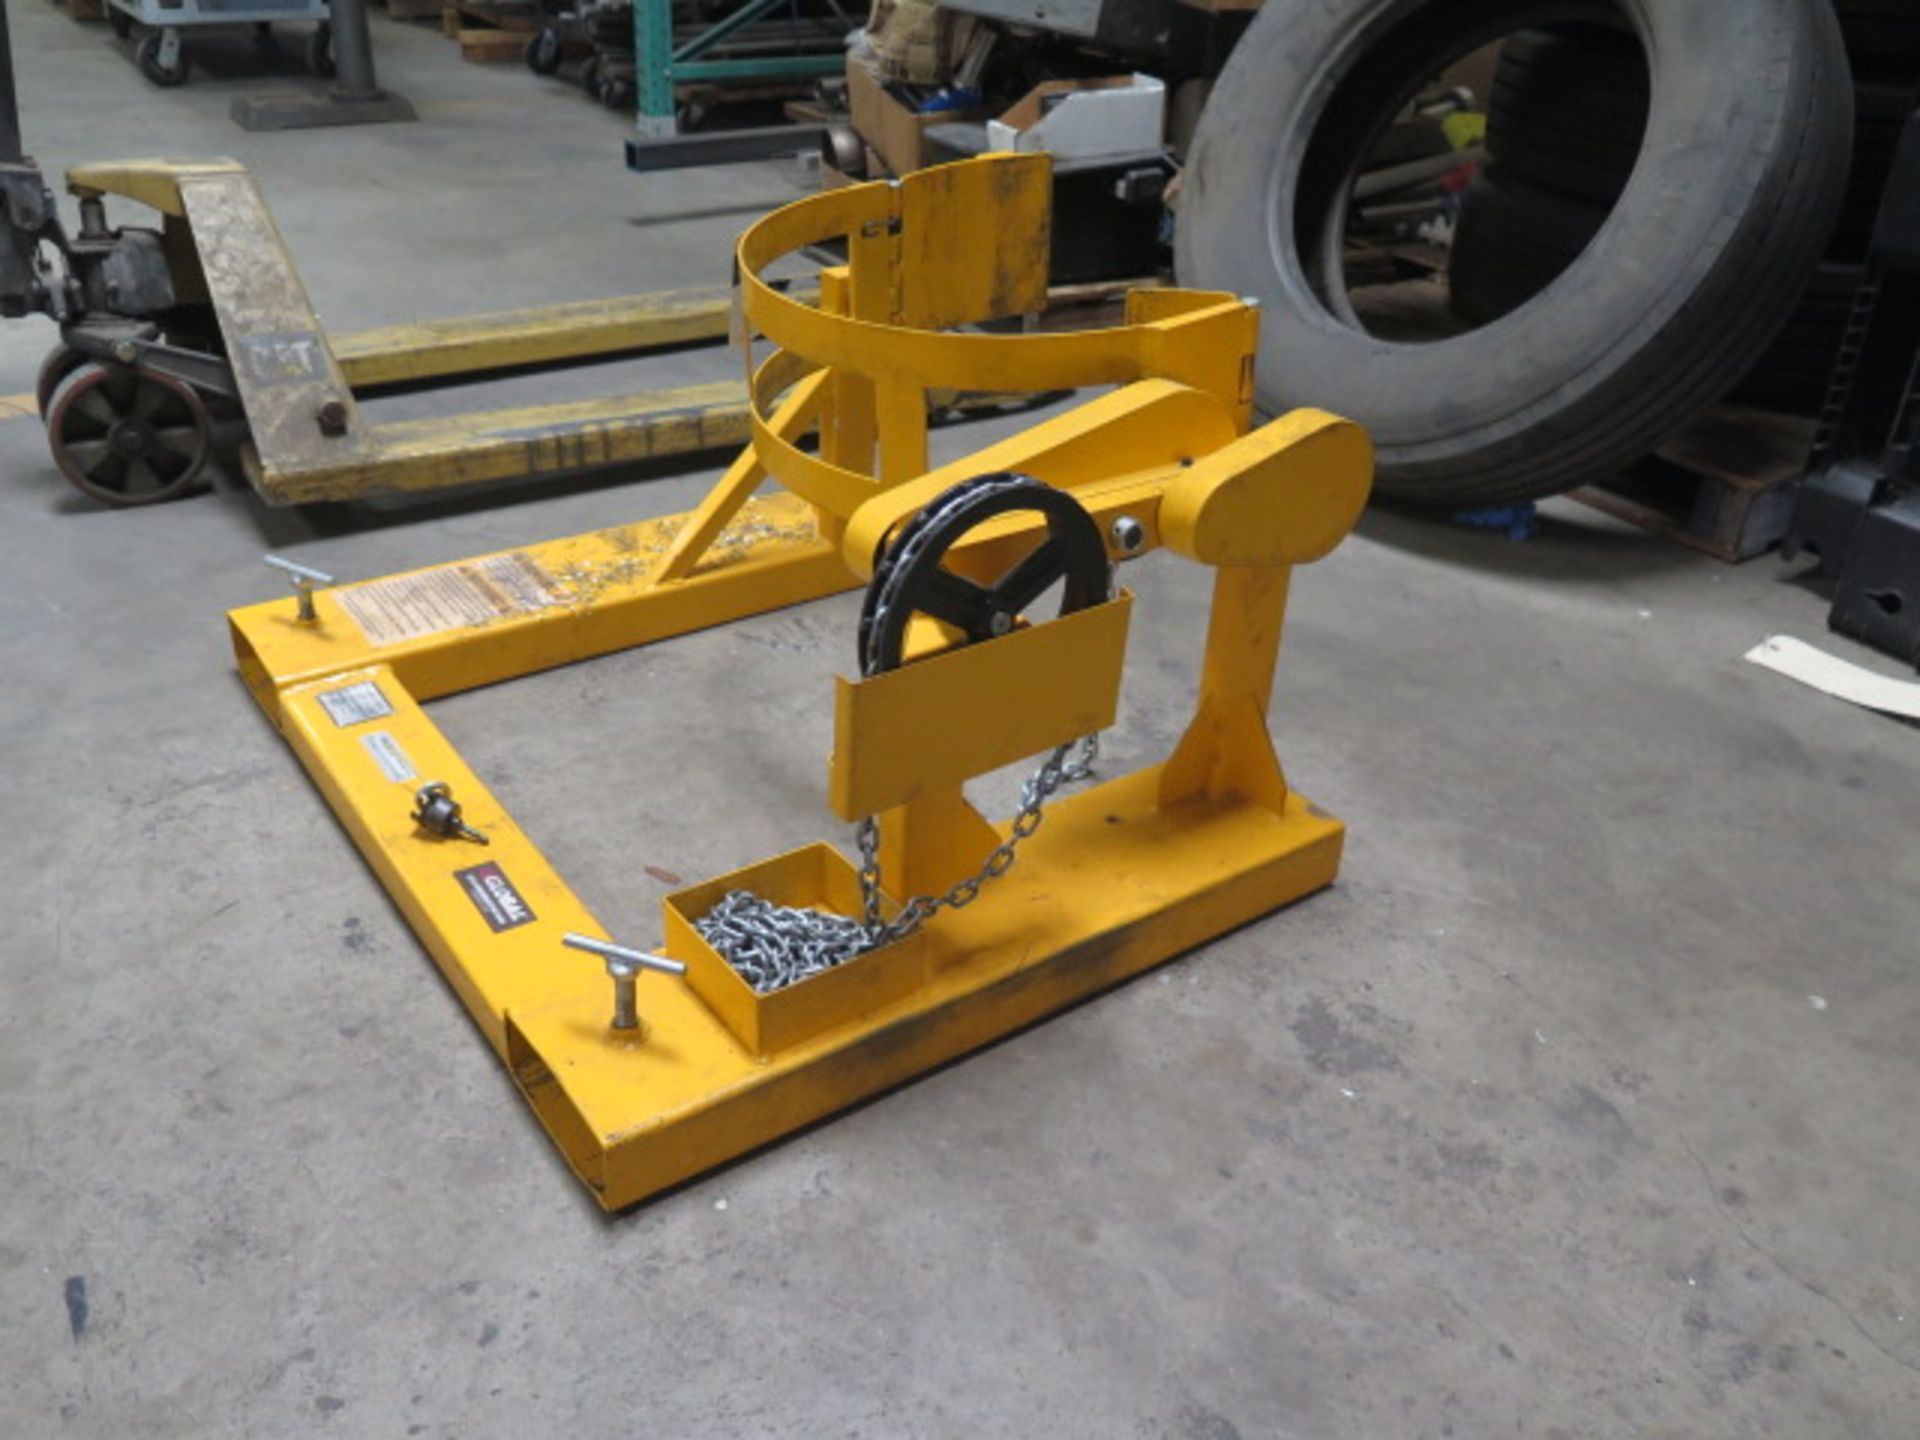 Global Barrel Turner Forklift Attachment (SOLD AS-IS - NO WARRANTY) - Image 2 of 5